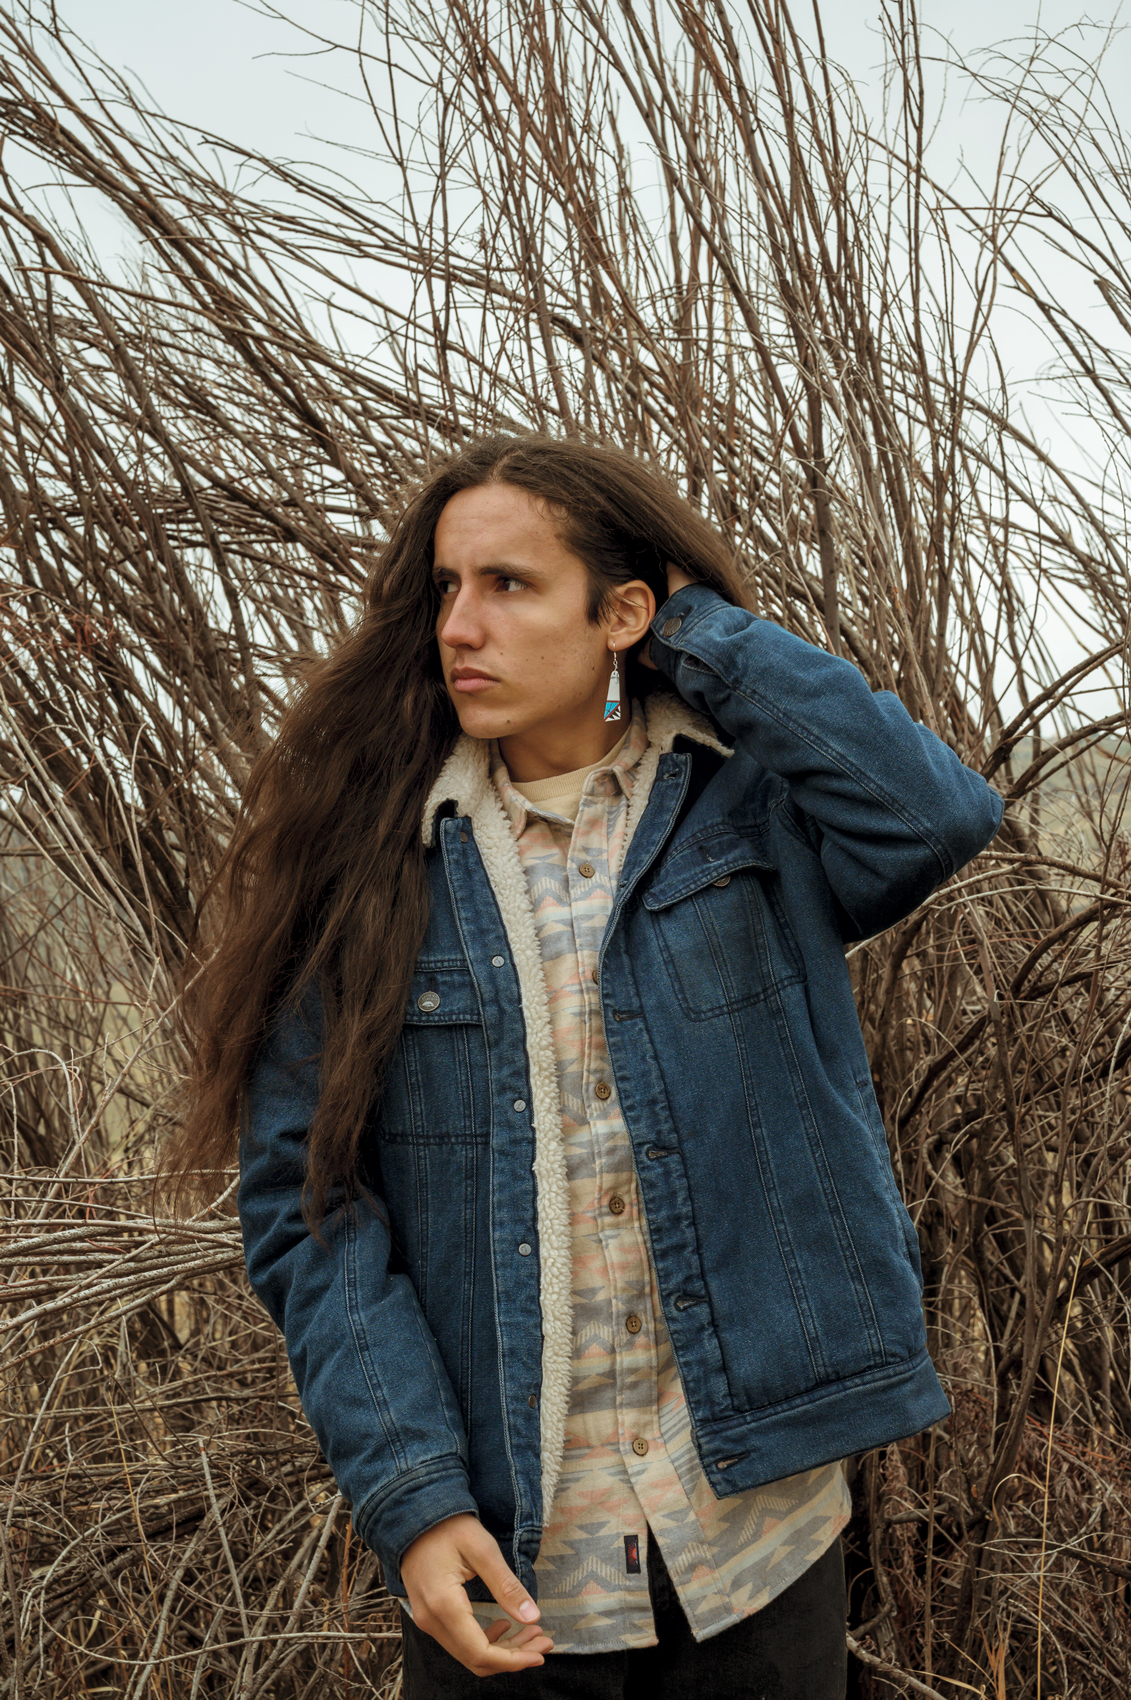 Xiuhtezcatl Martinez (pronounced: Shoe-Tez-Caht), 18, of Boulder, Colo., sits for a portrait in Boulder on Friday, March 29, 2019. Martinez is an indigenous environmental activist, musician, and youth director of Earth Guardians.